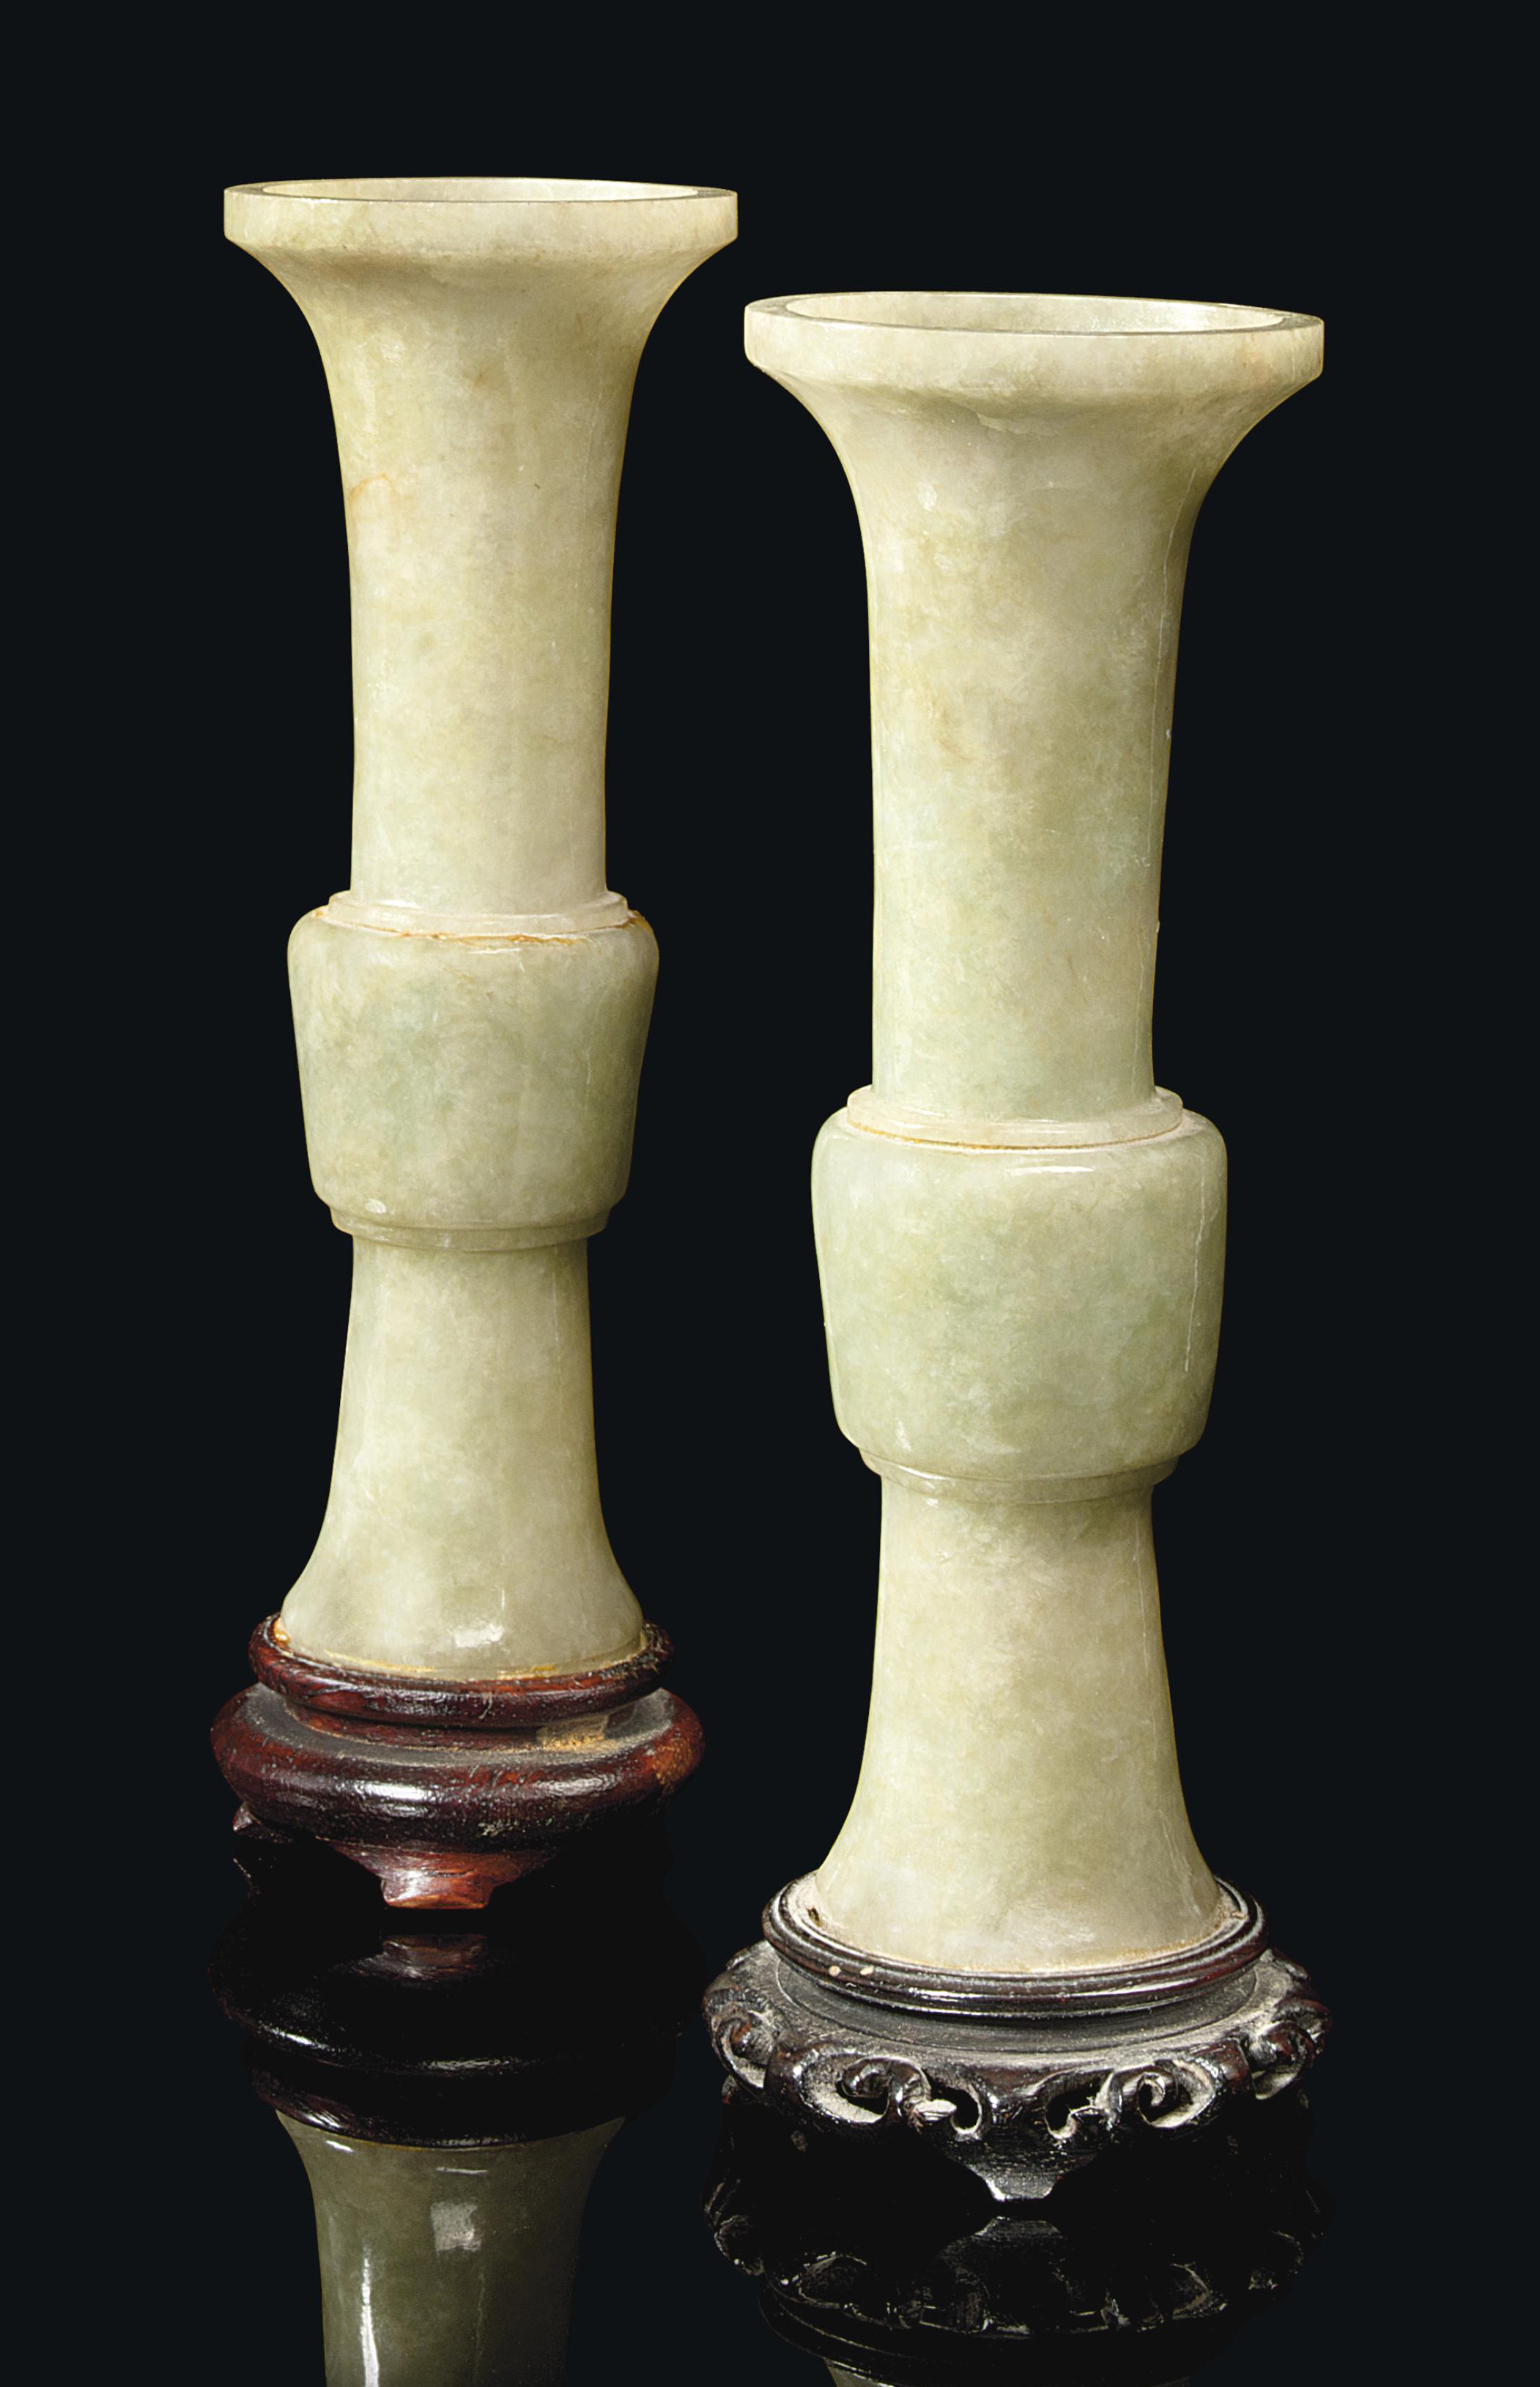 A PAIR OF CHINESE CELADON JADE